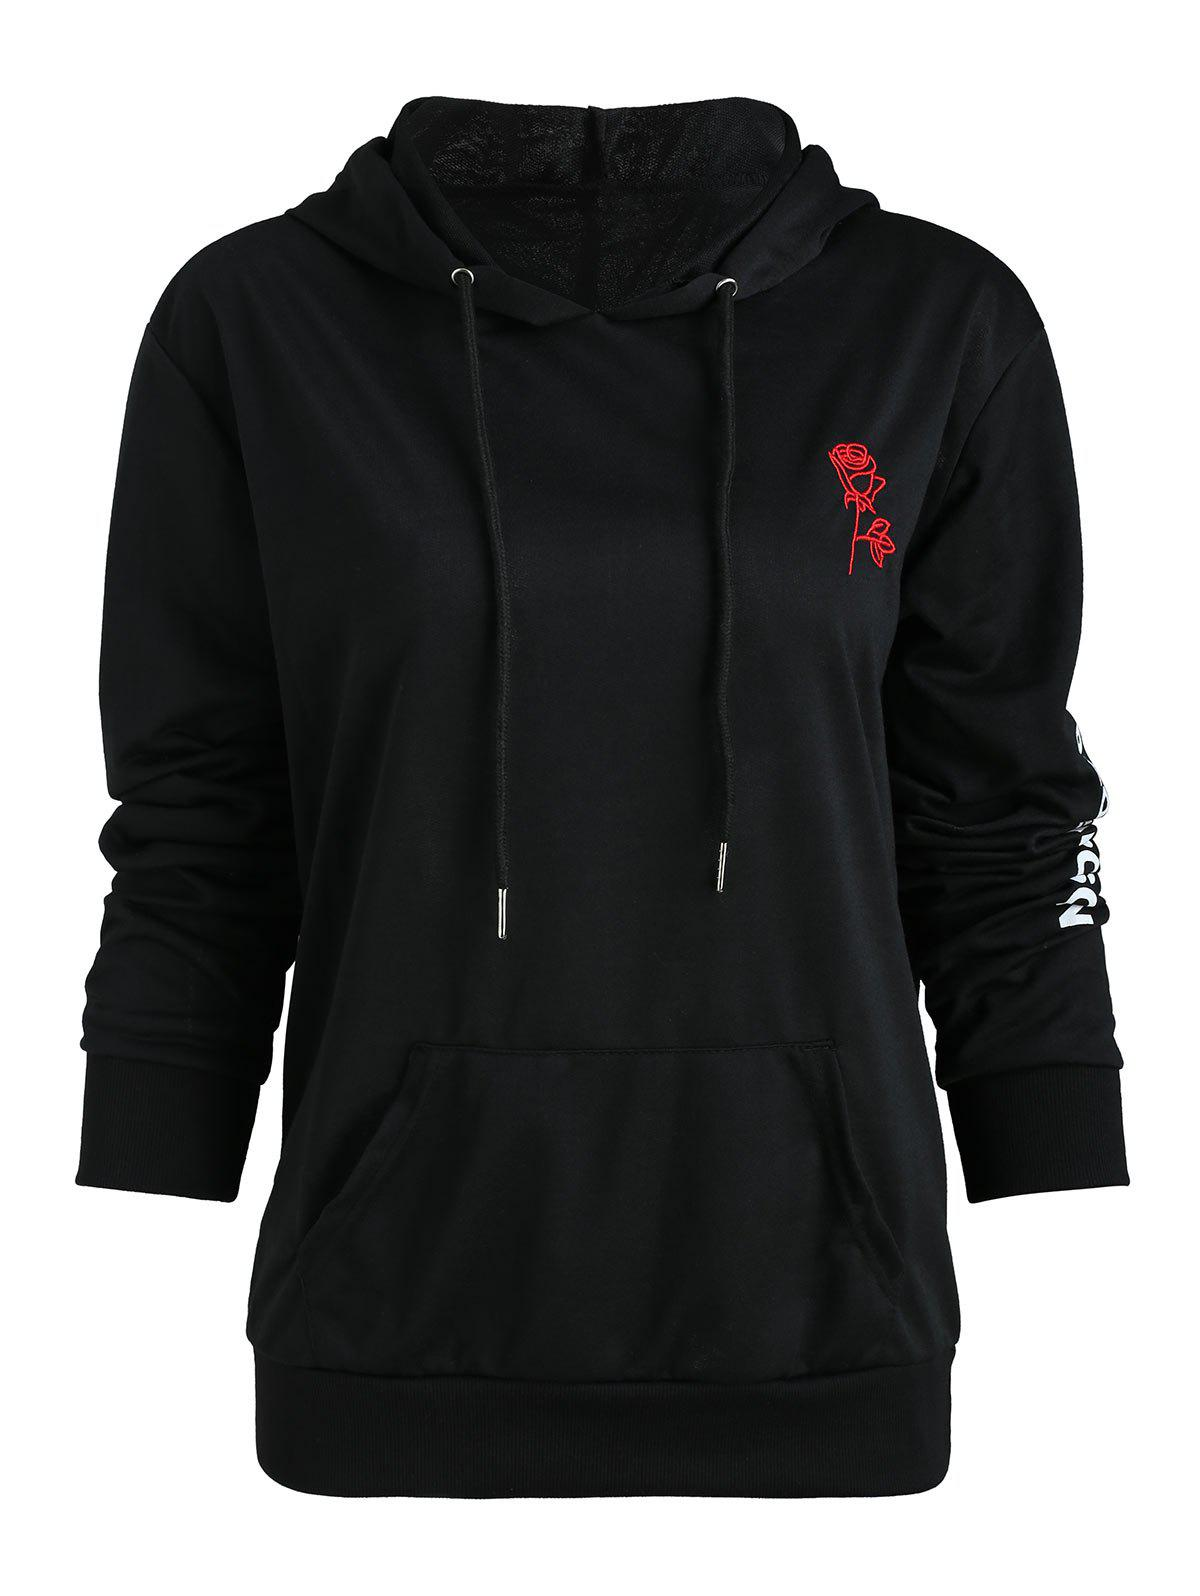 Shop Rose Embroidered Letter Print Hoodie